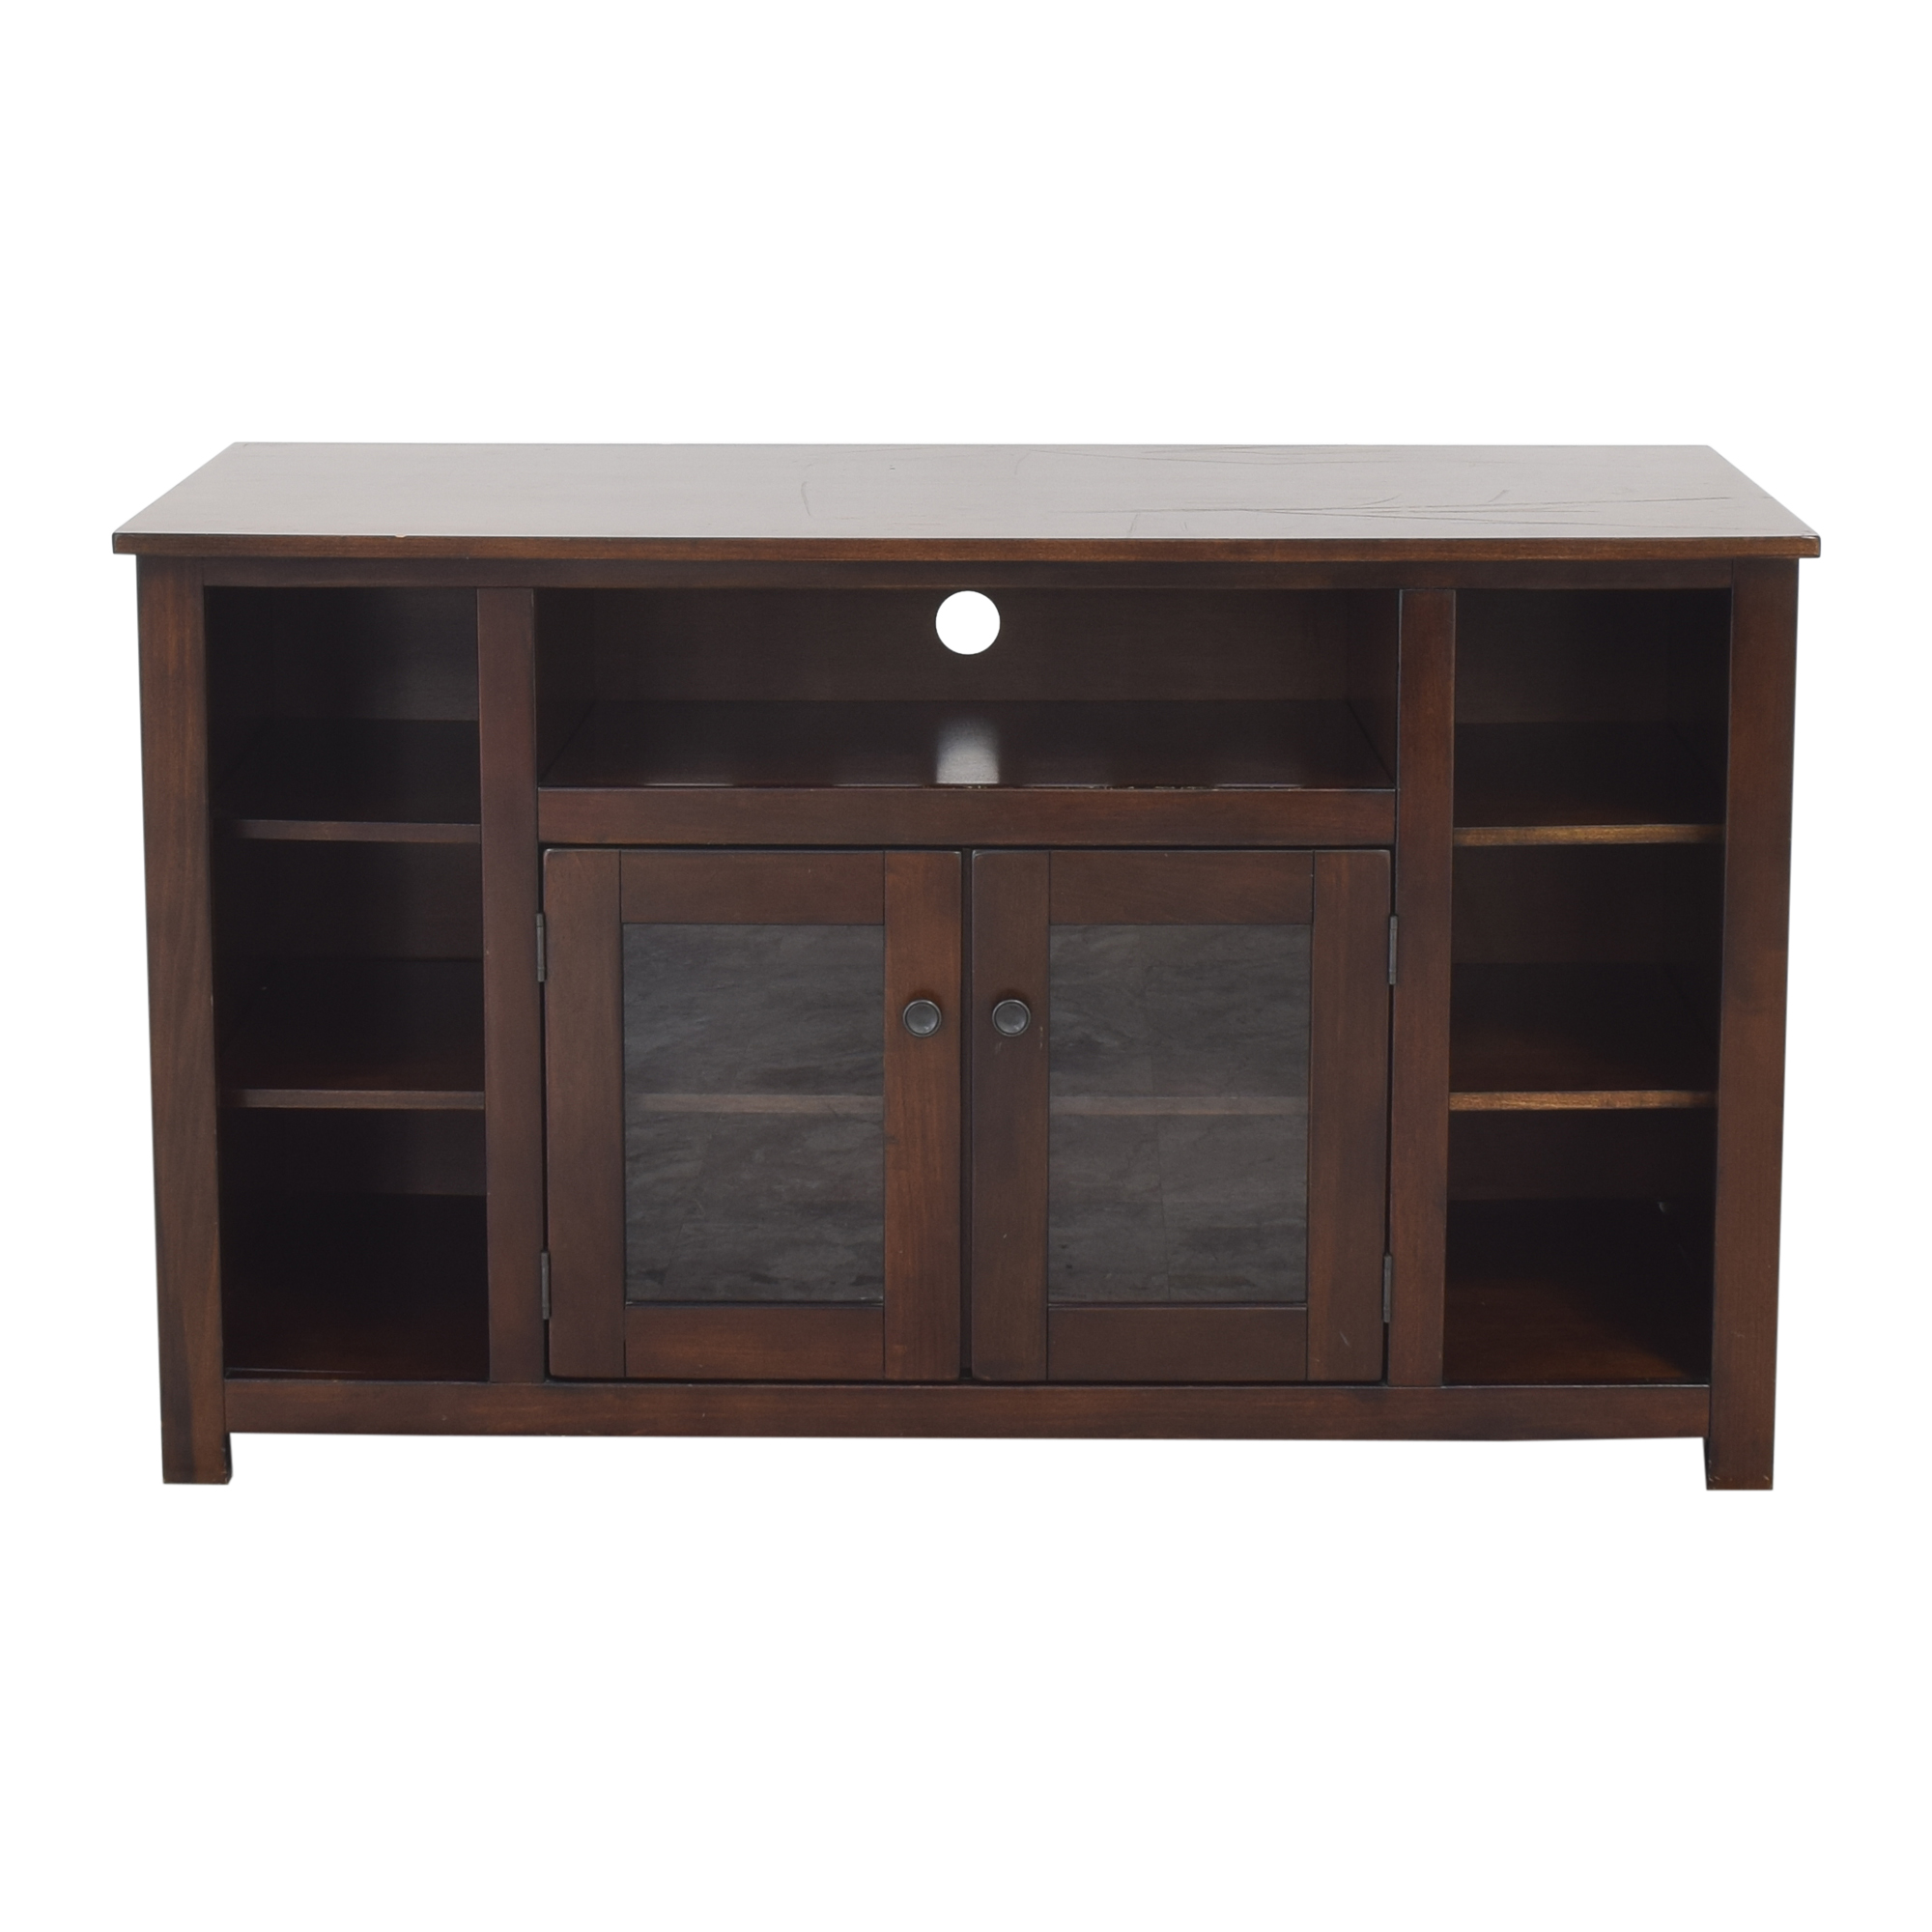 Ashley Furniture Ashley Furniture Signature Design Media Console on sale